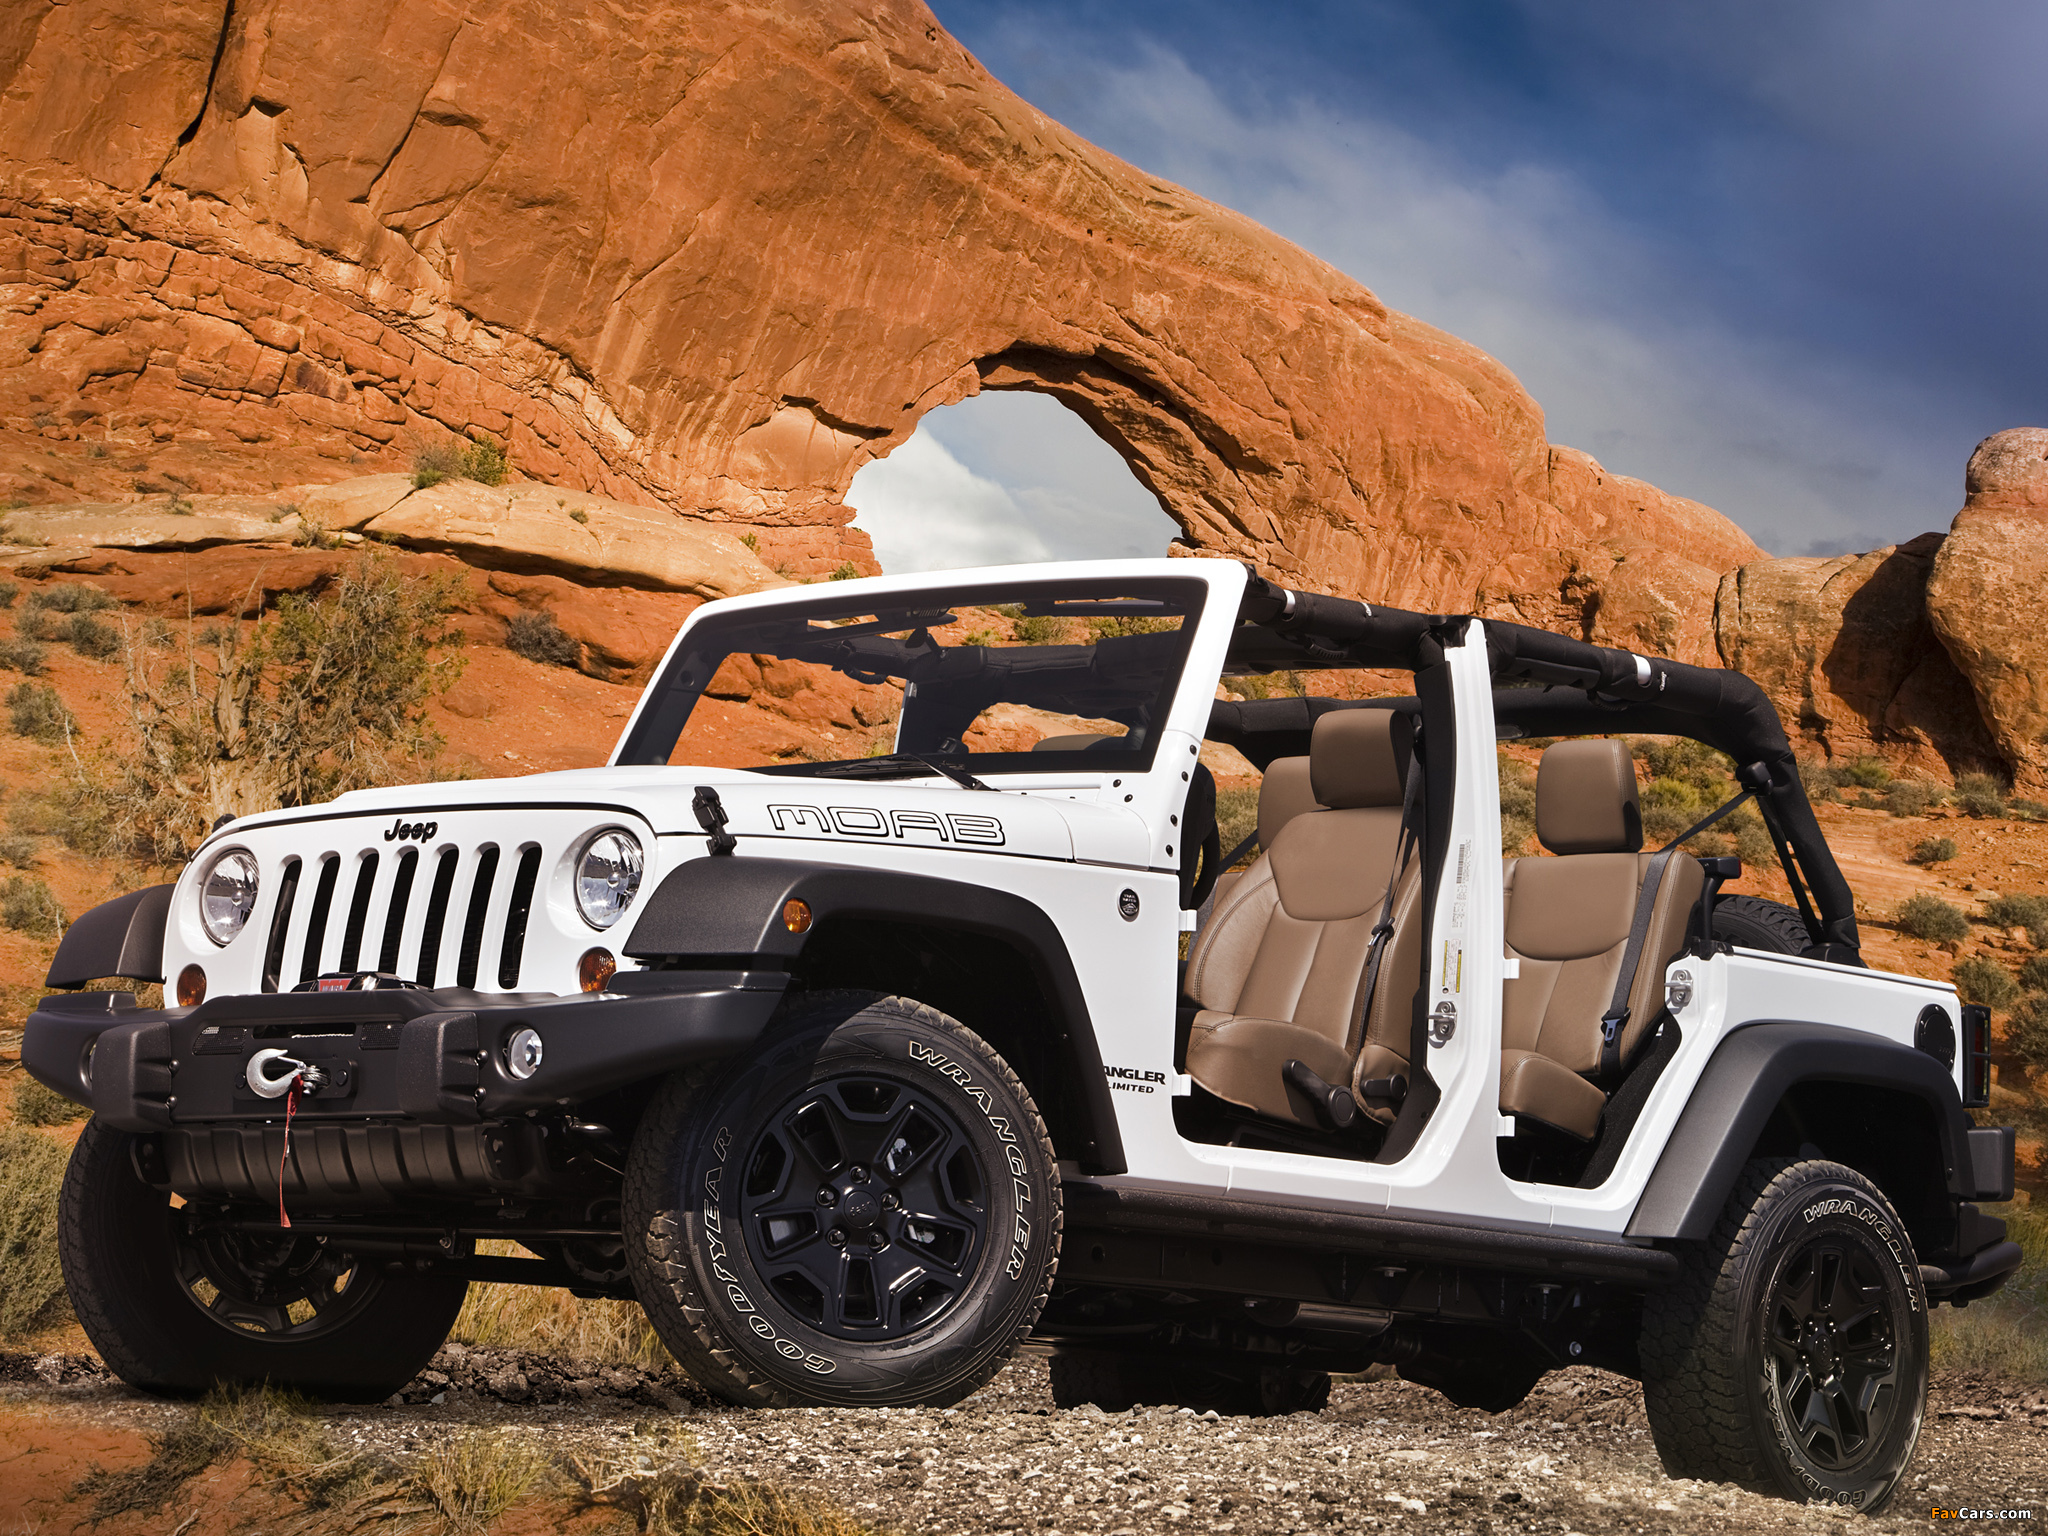 Jeep Wrangler Unlimited Moab (JK) 2012 wallpapers (2048 x 1536)